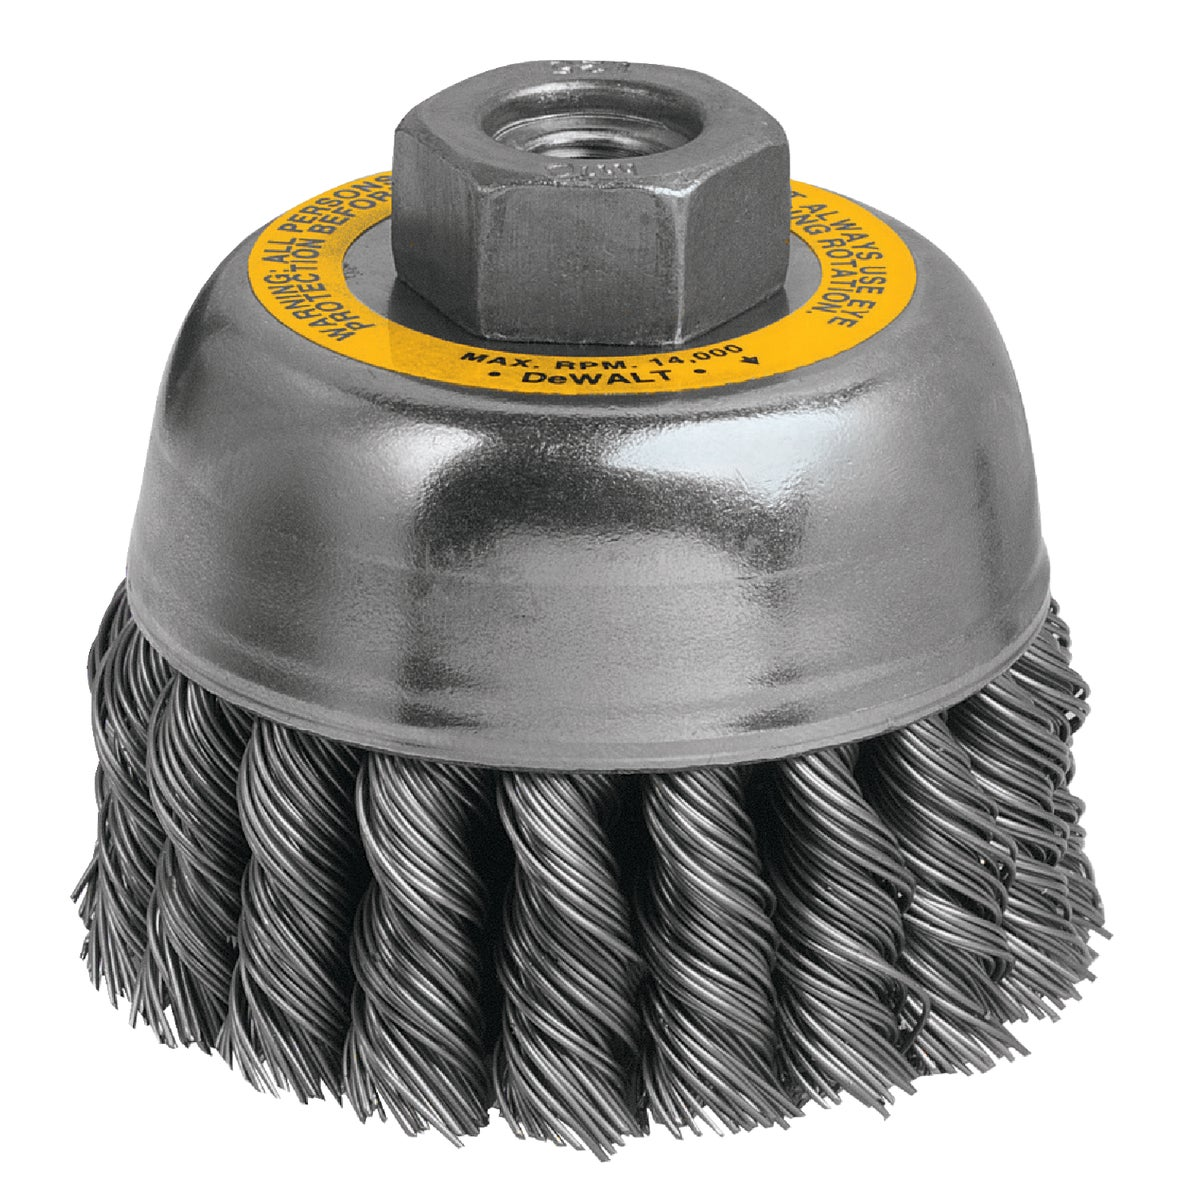 "3"" KNOTTED CUP BRUSH - DW4915 by DeWalt"